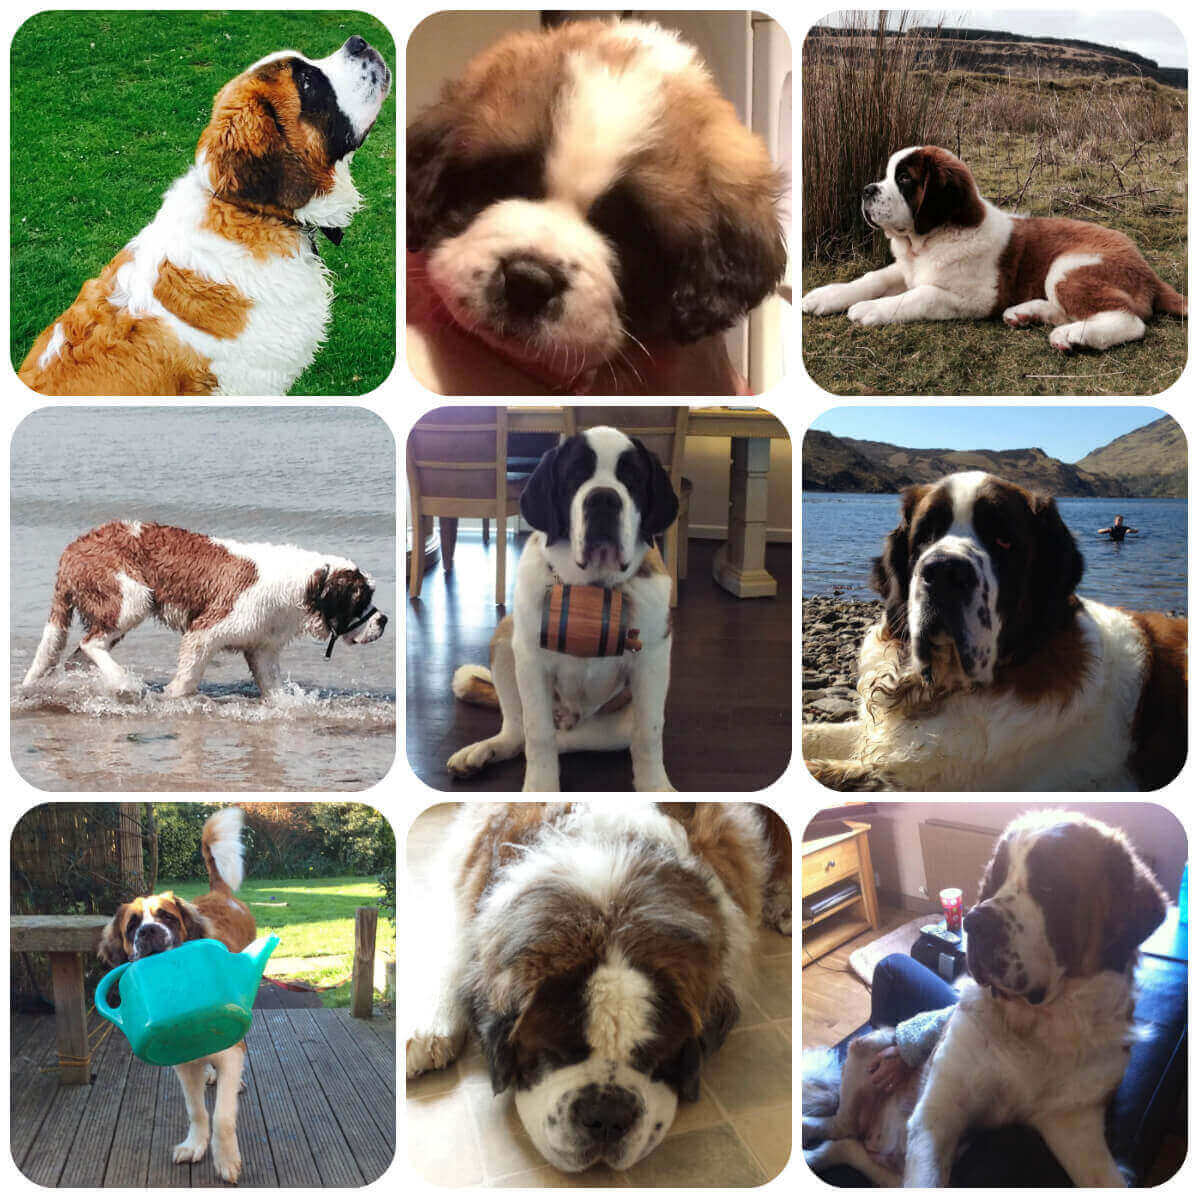 A collage of st bernard dogs and puppies, part of BorrowMyDoggy's guide to dog breeds.